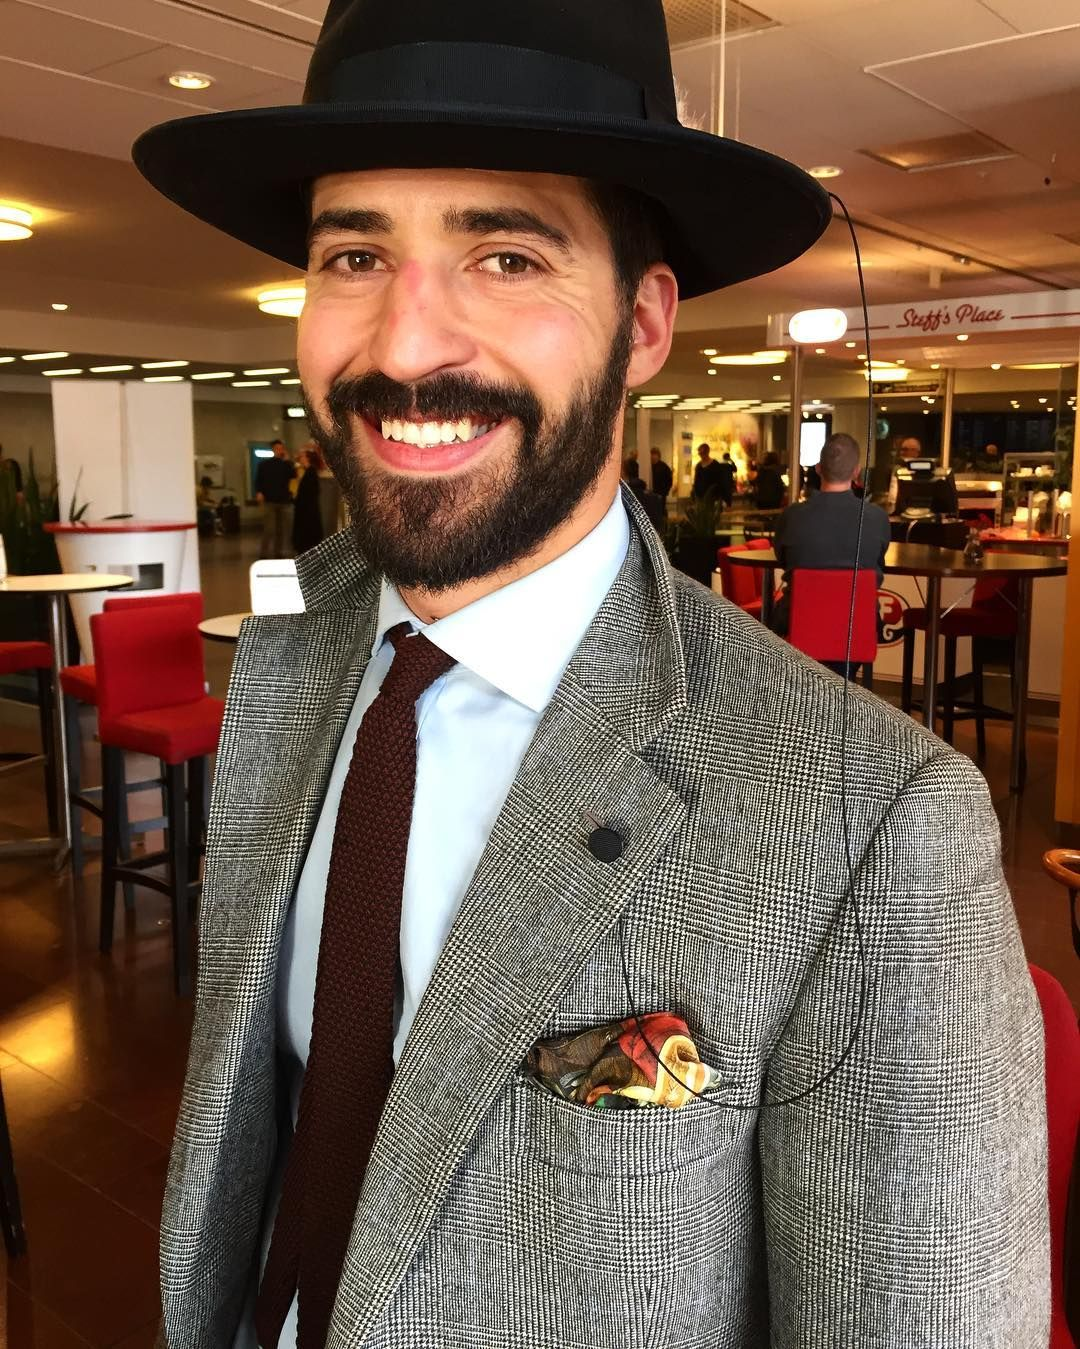 Marcel Rodrigues Hats The Best Bespoke Hat Maker In The U K Who Has Just Introduced Us To Our New Favourite Invention Bespoke Hats Menswear Gentlemen Wear